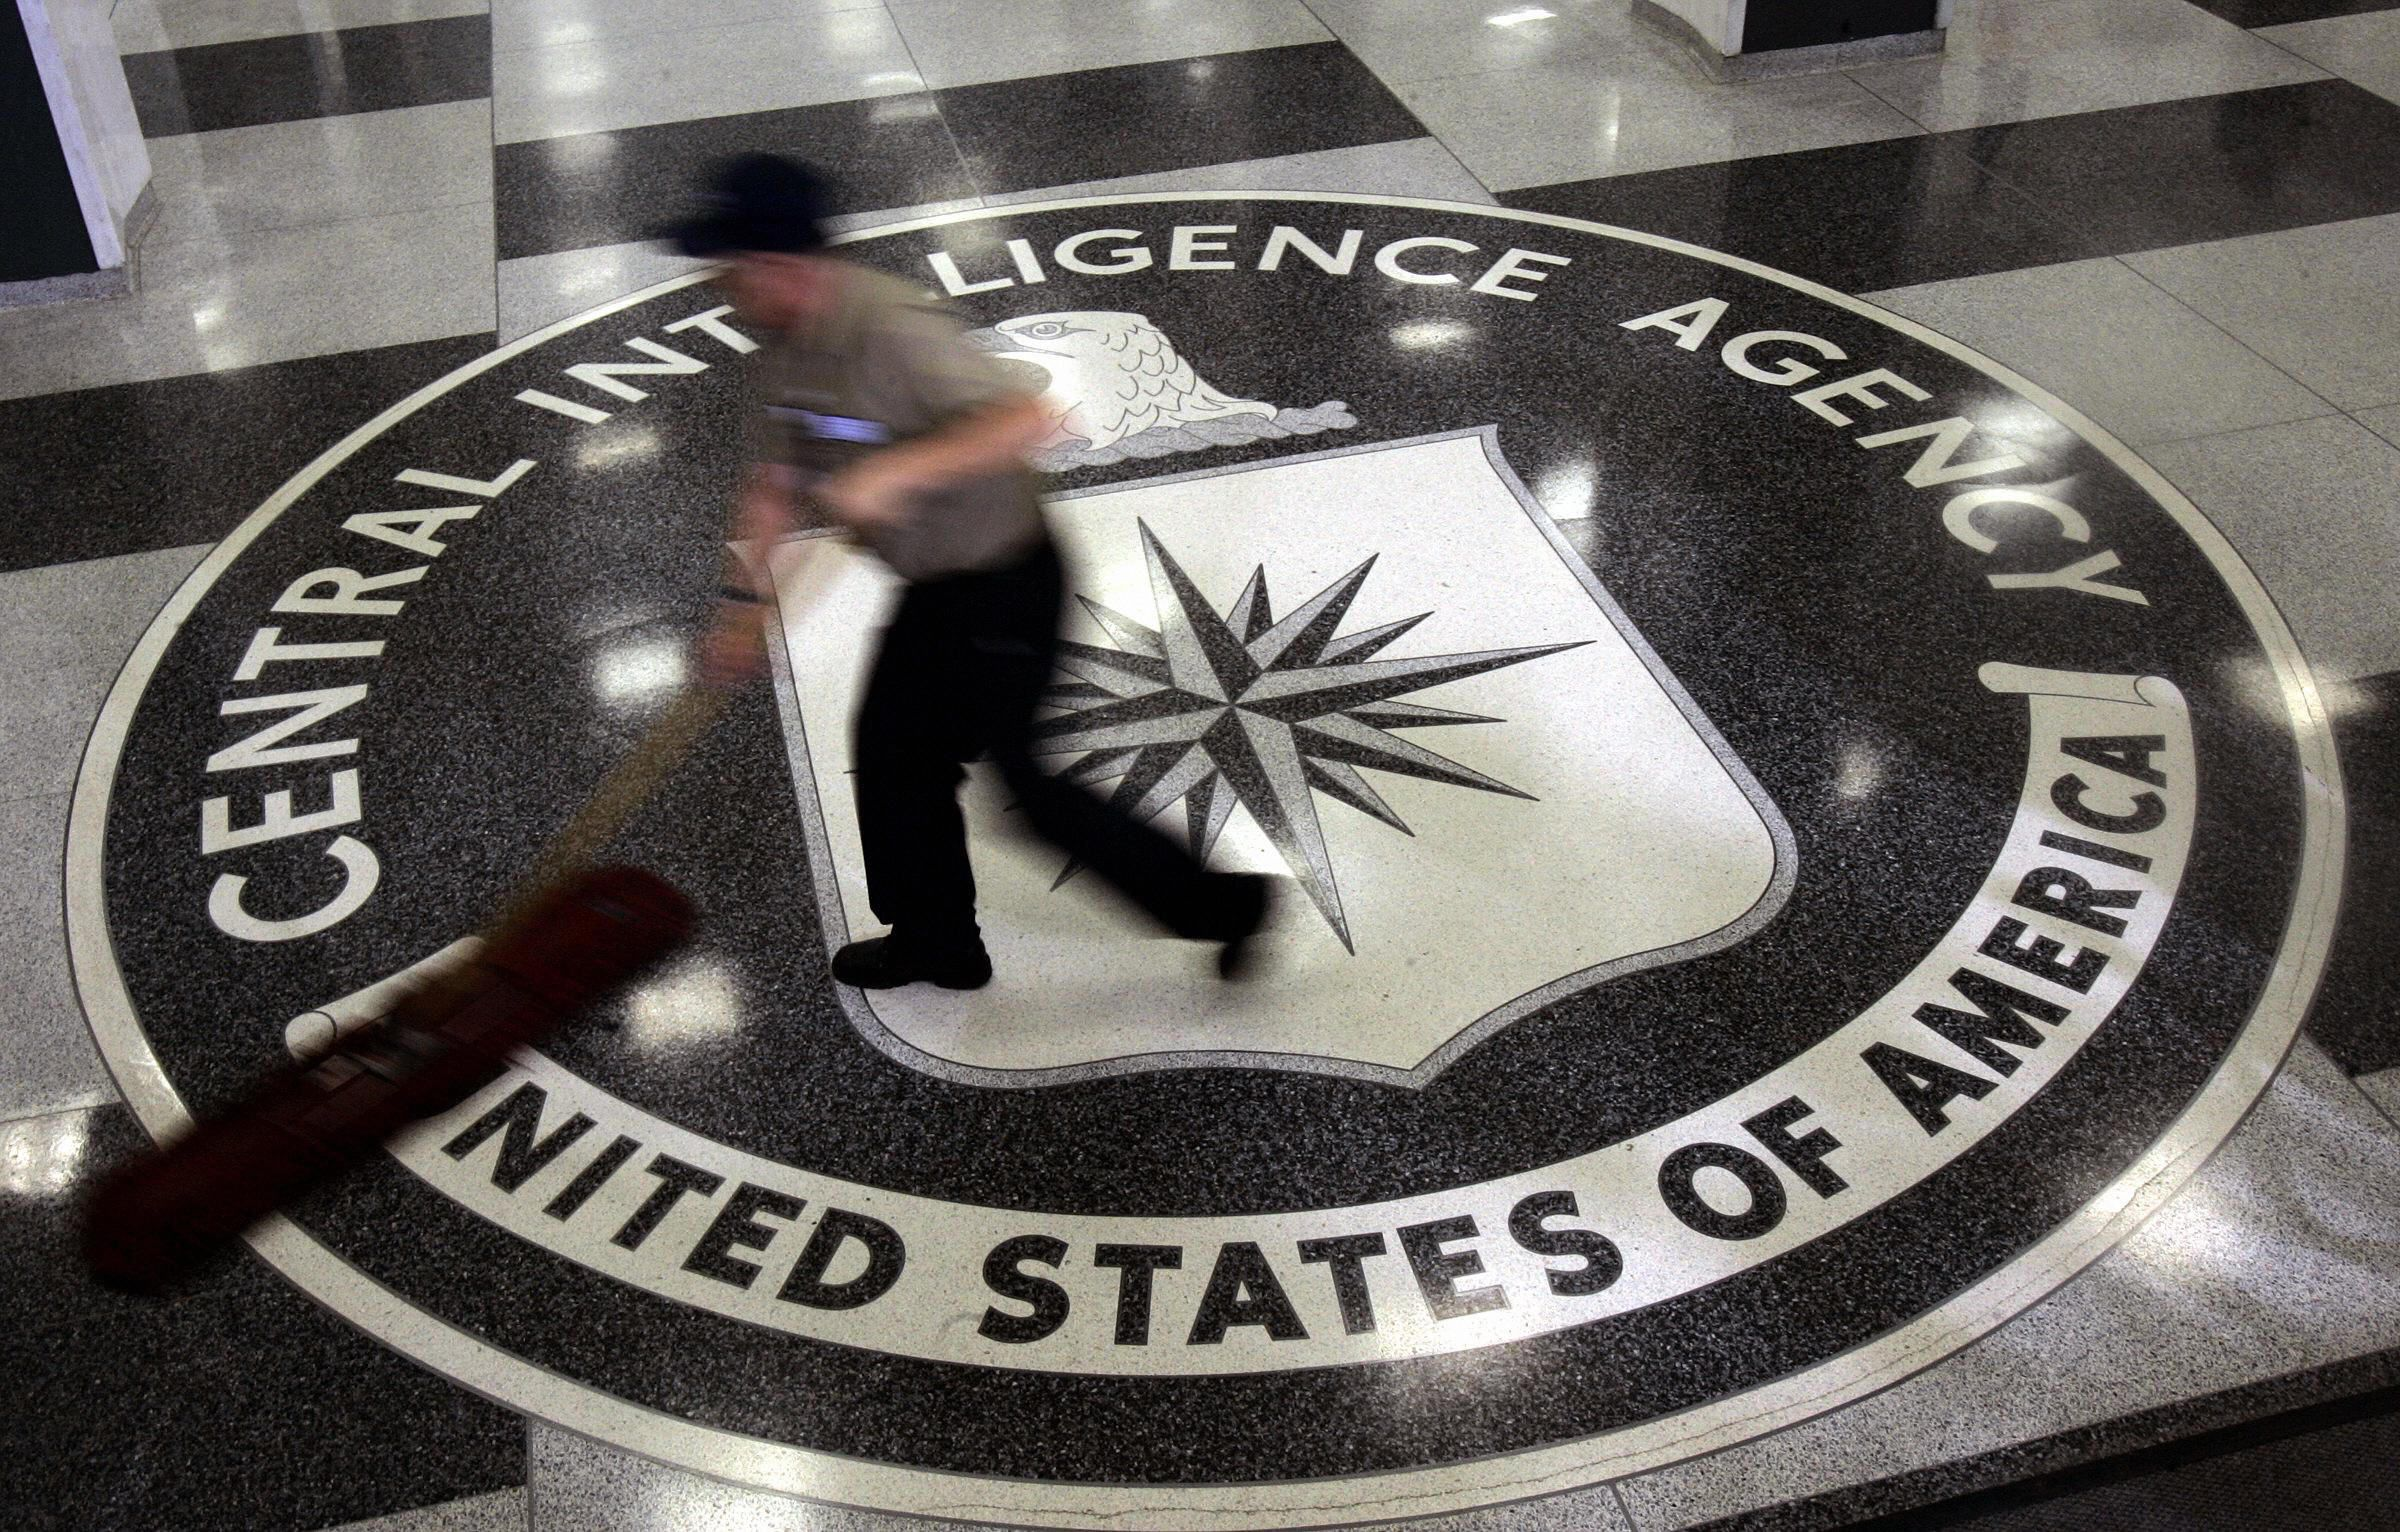 Former CIA Agent Charged For Keeping Classified Info